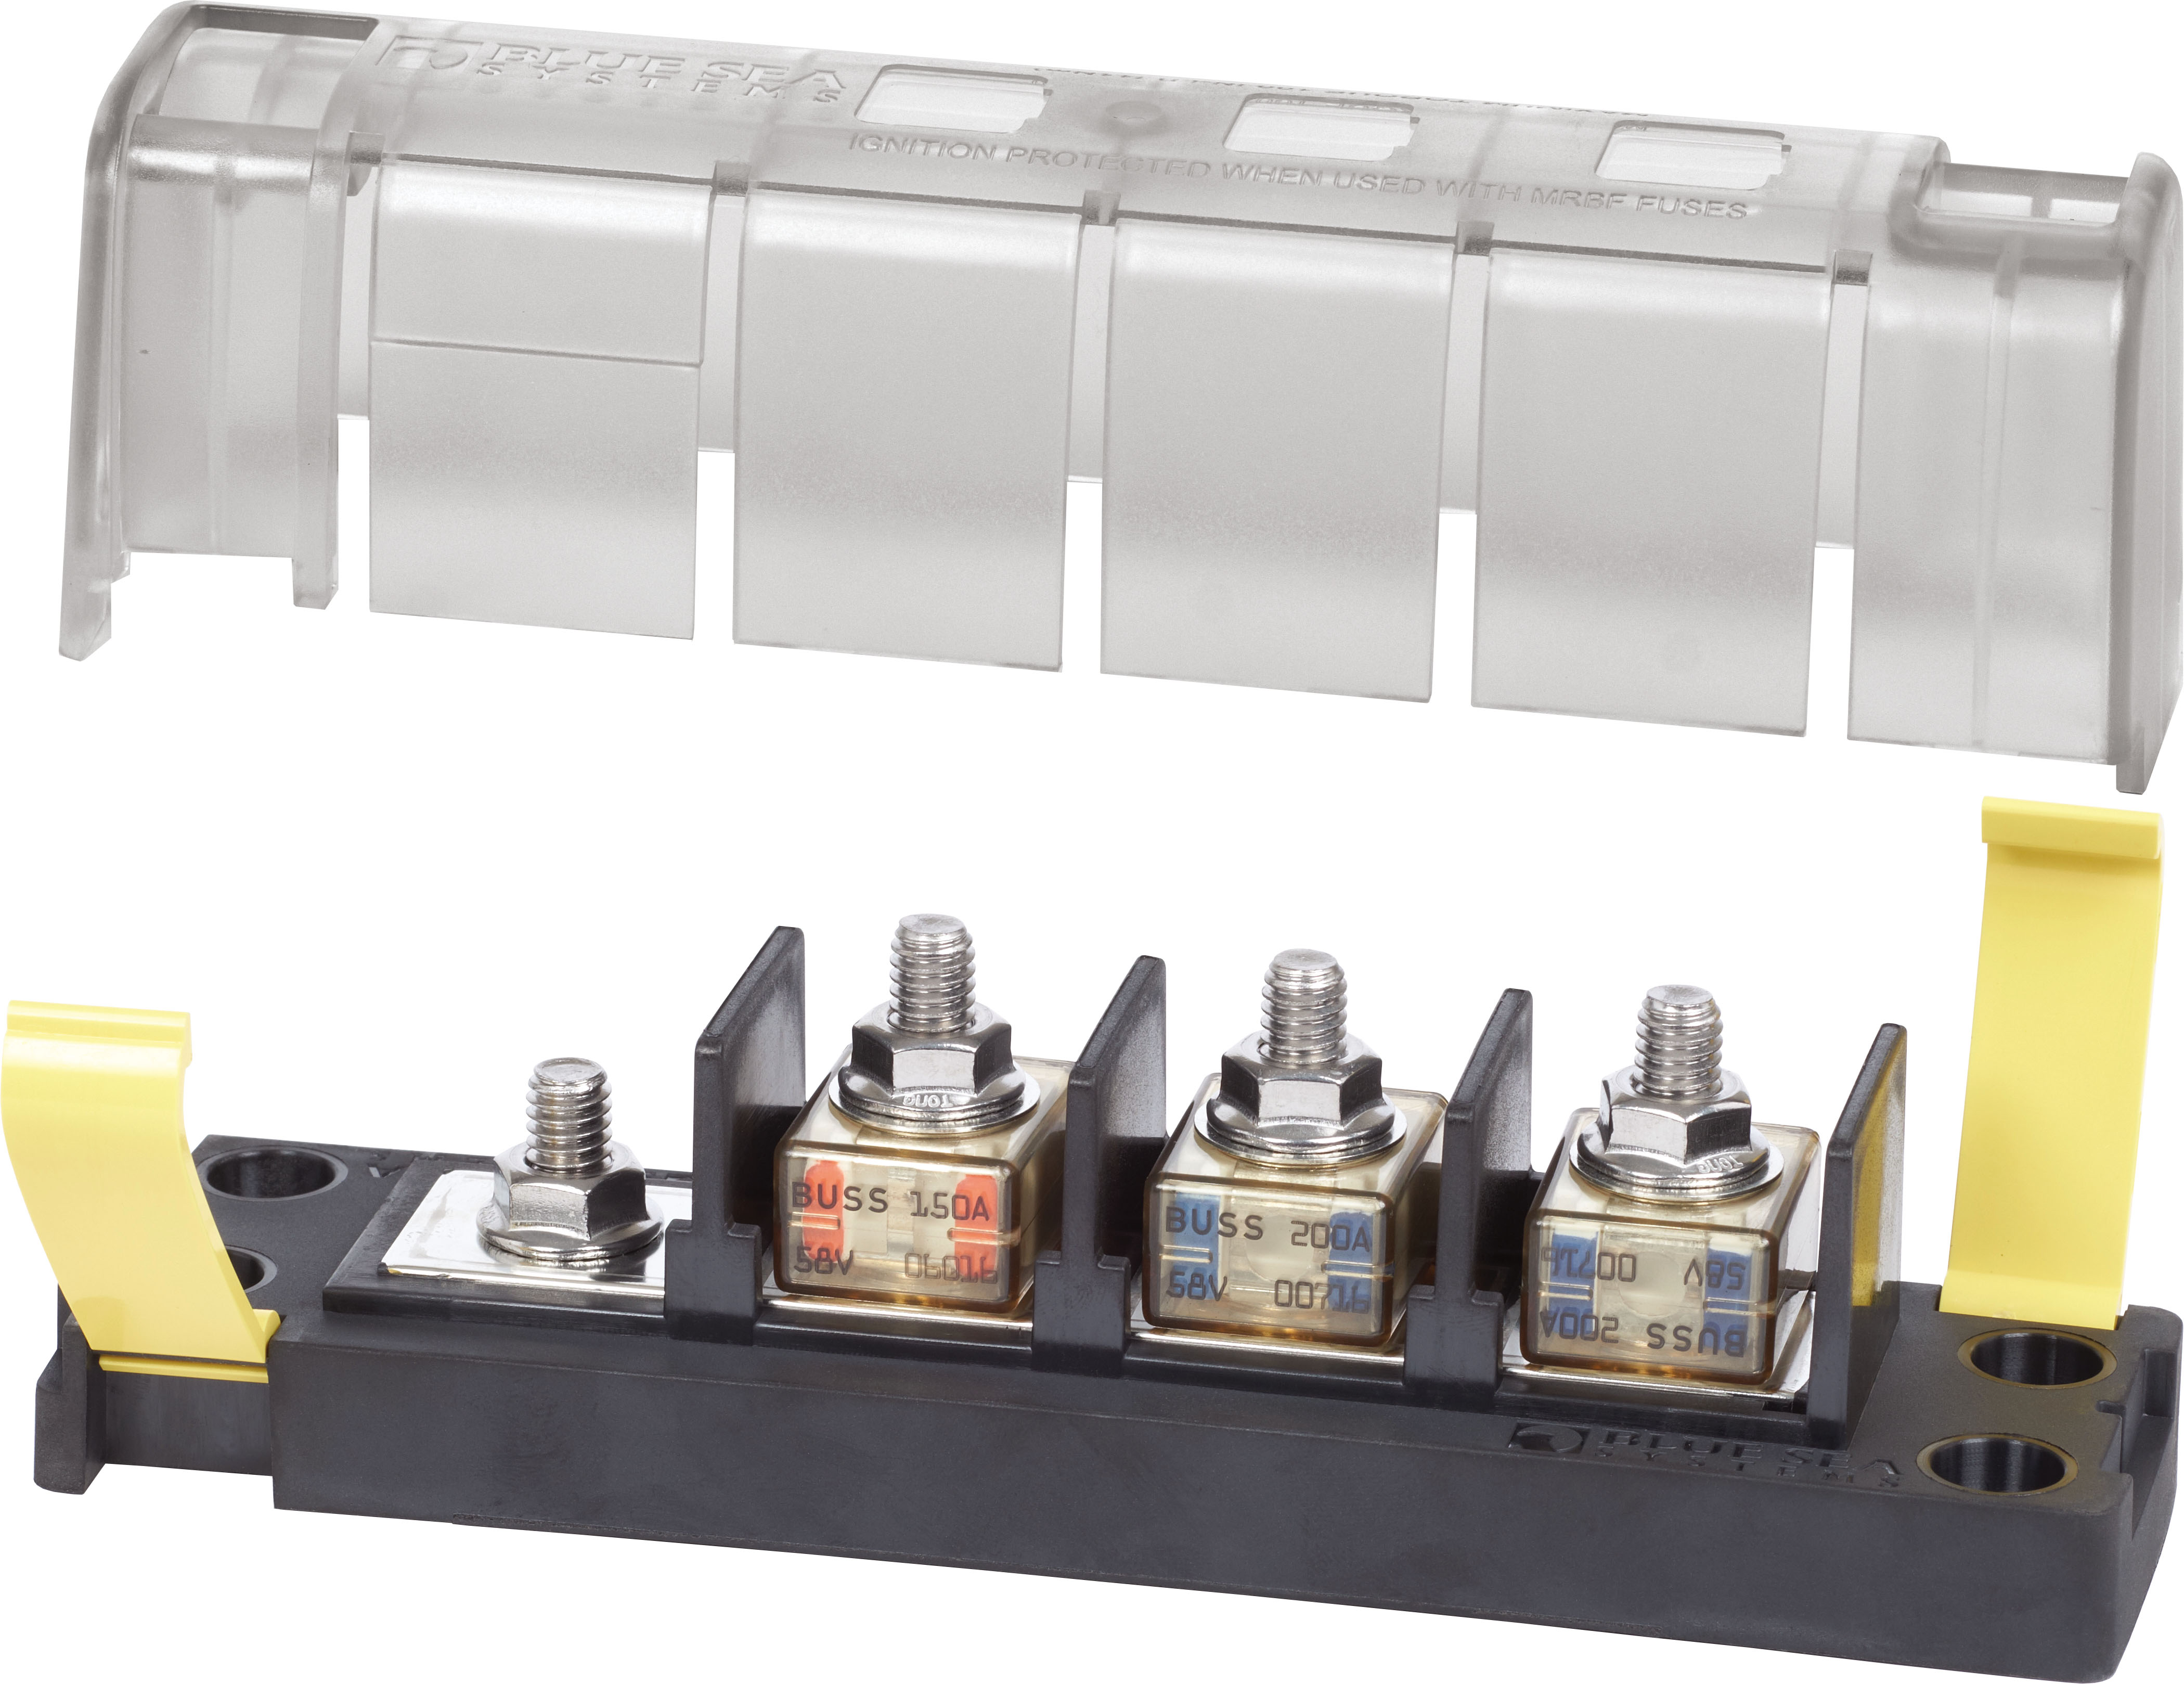 Mrbf Surface Mount Fuse Block Common Source Blue Sea Systems Box Fuses Product Image